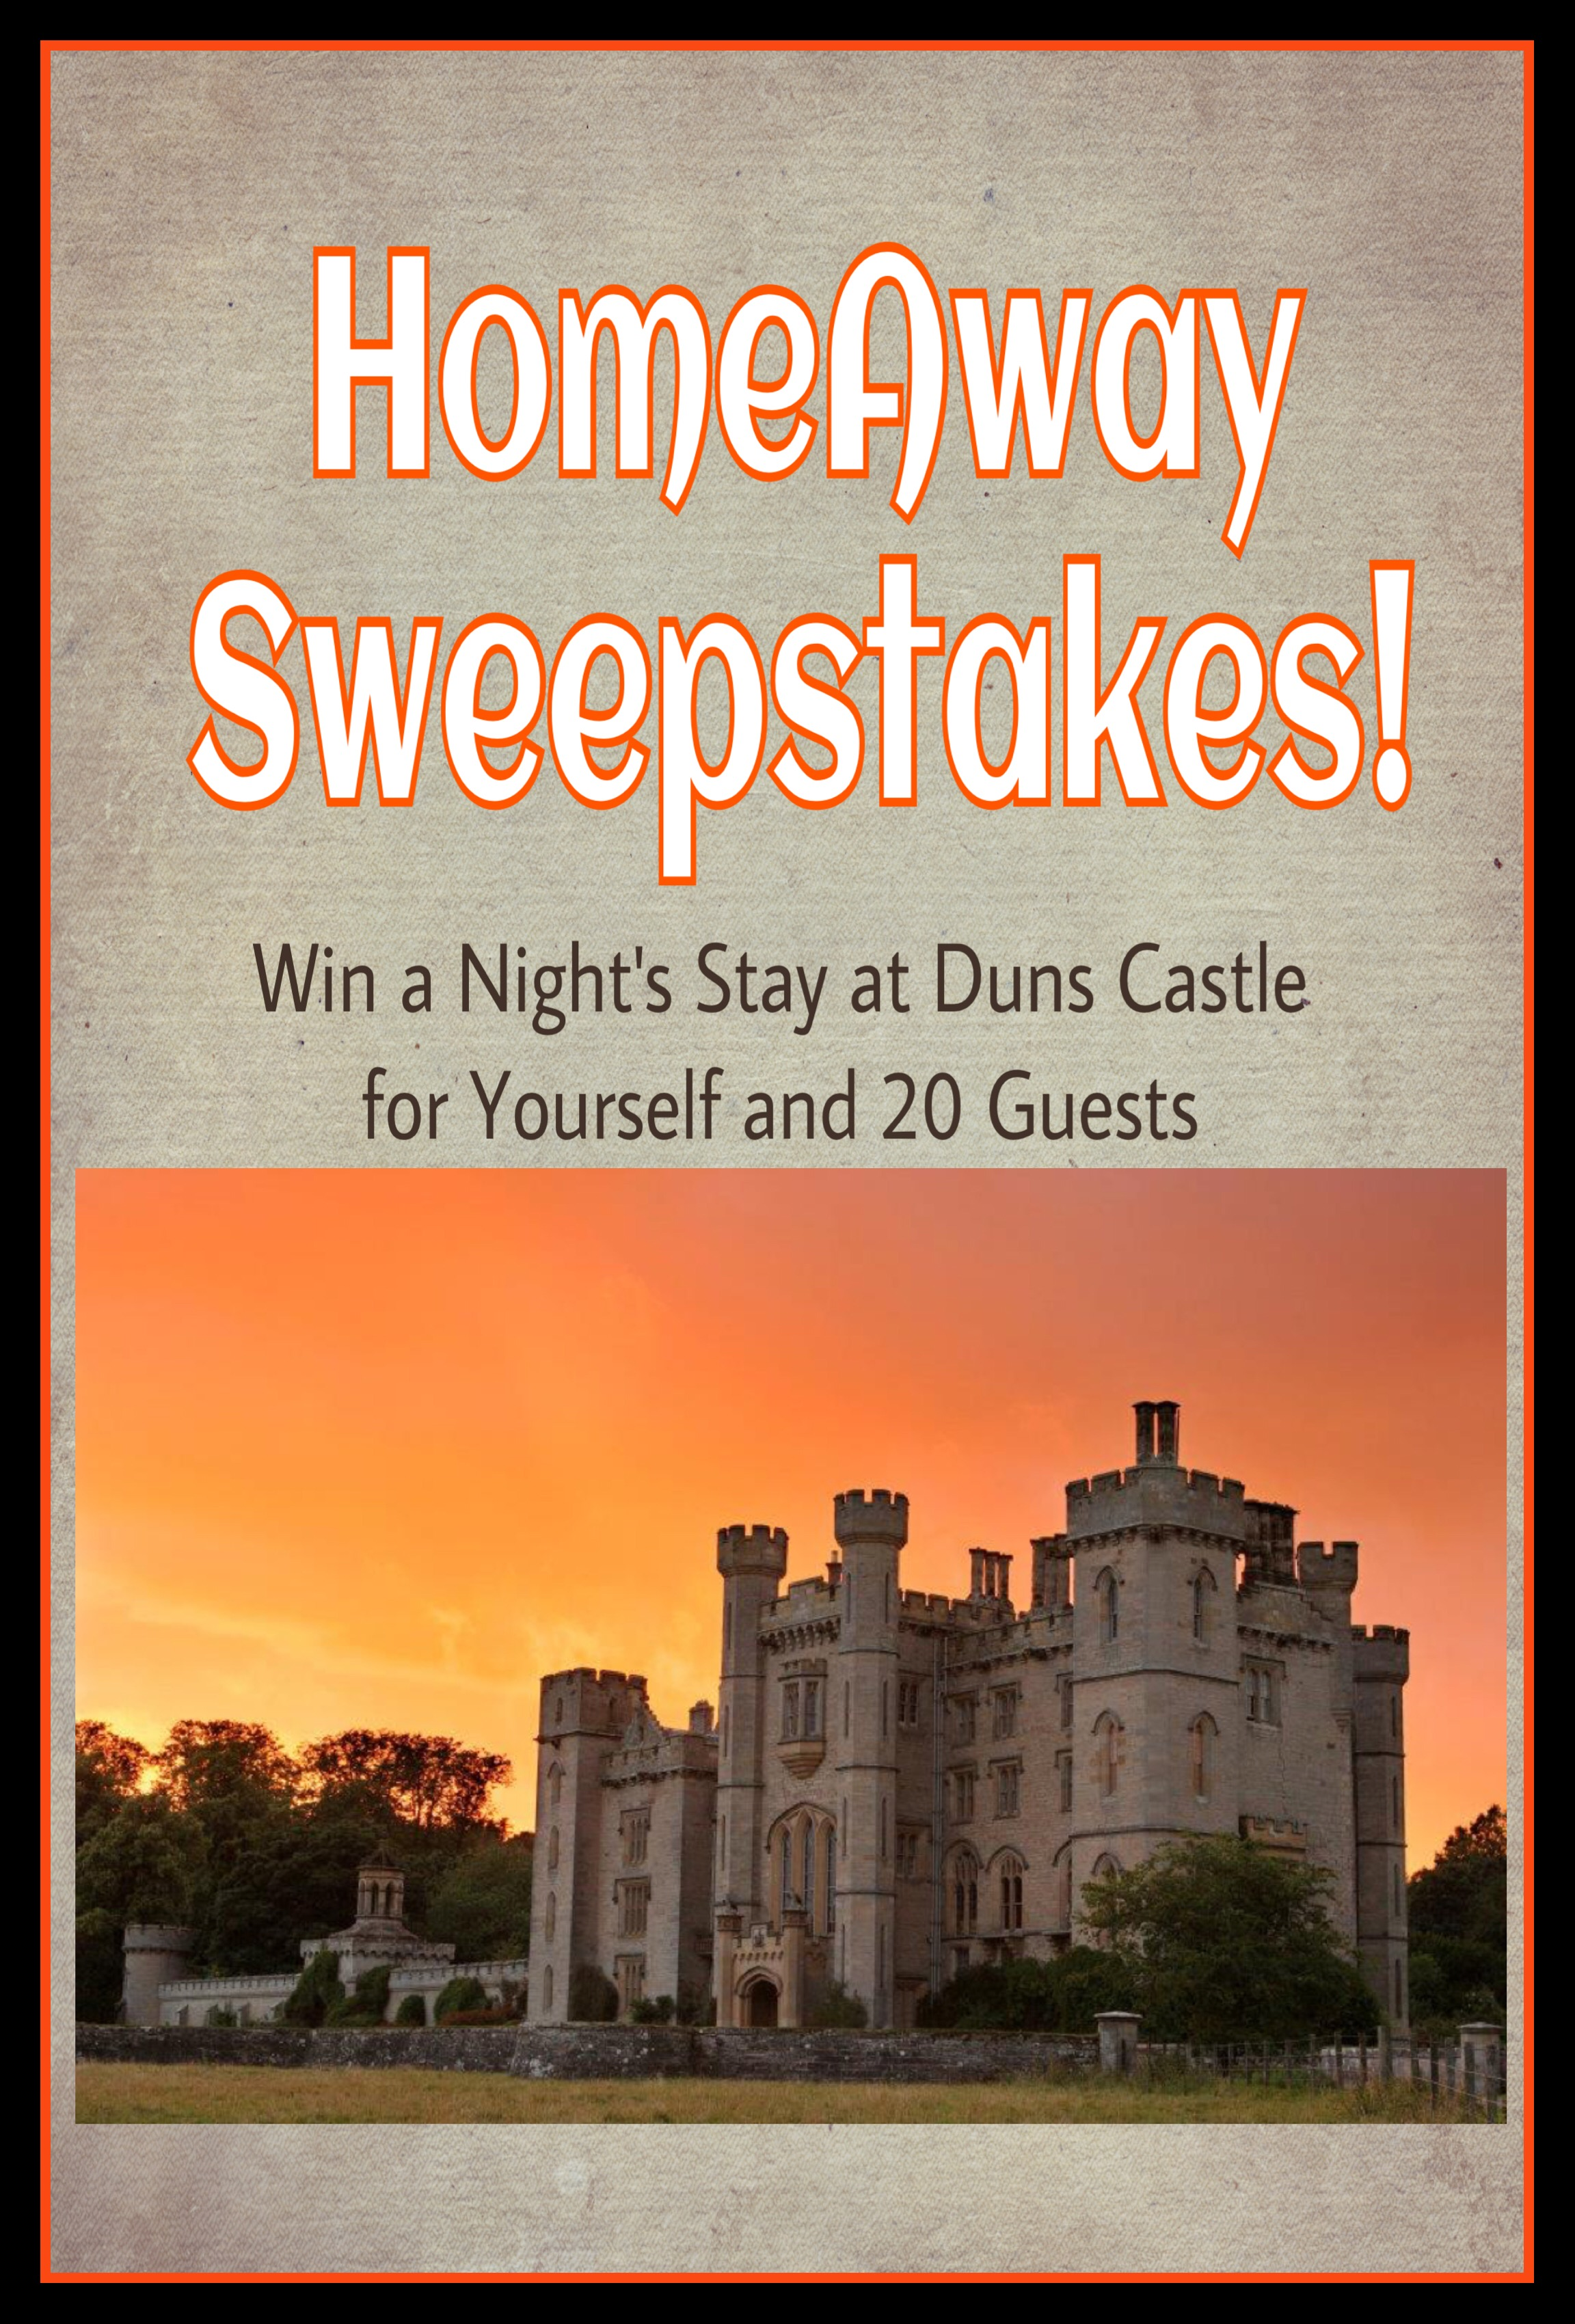 Homeaway Sweepstakes Win A Stay At Duns Castle For